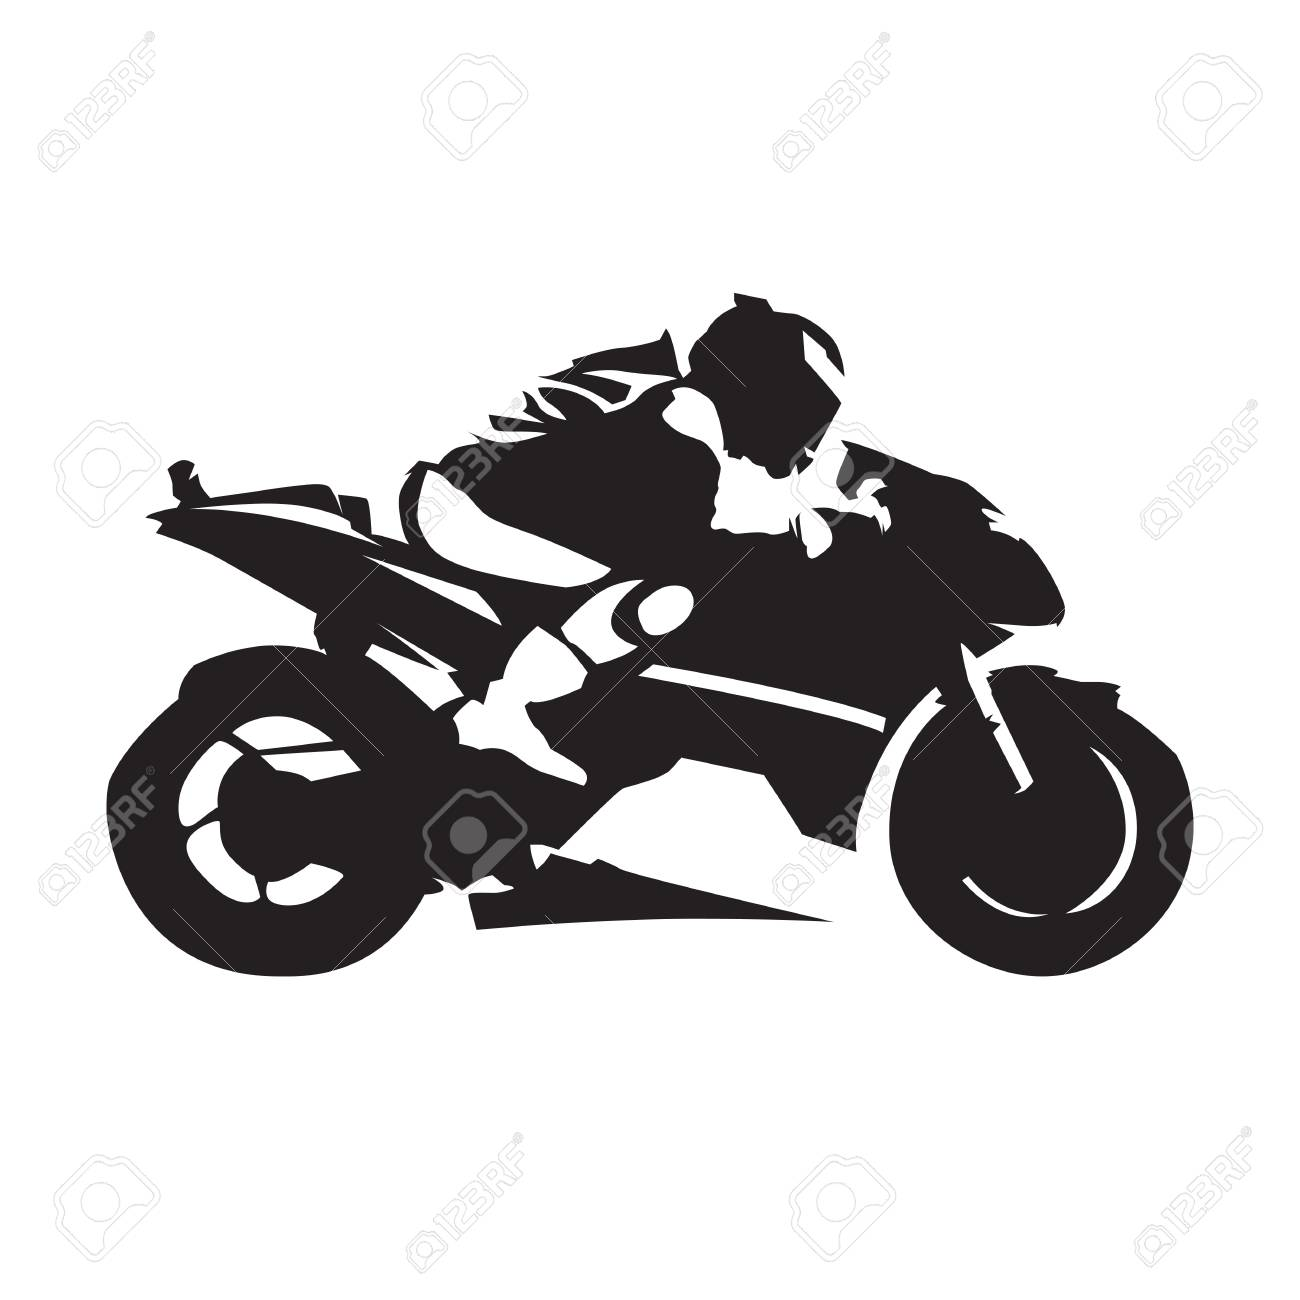 Beautiful Motorcycle Racing, Abstract Vector Silhouette. Side View. Road Motorbike  Stock Vector   95135426